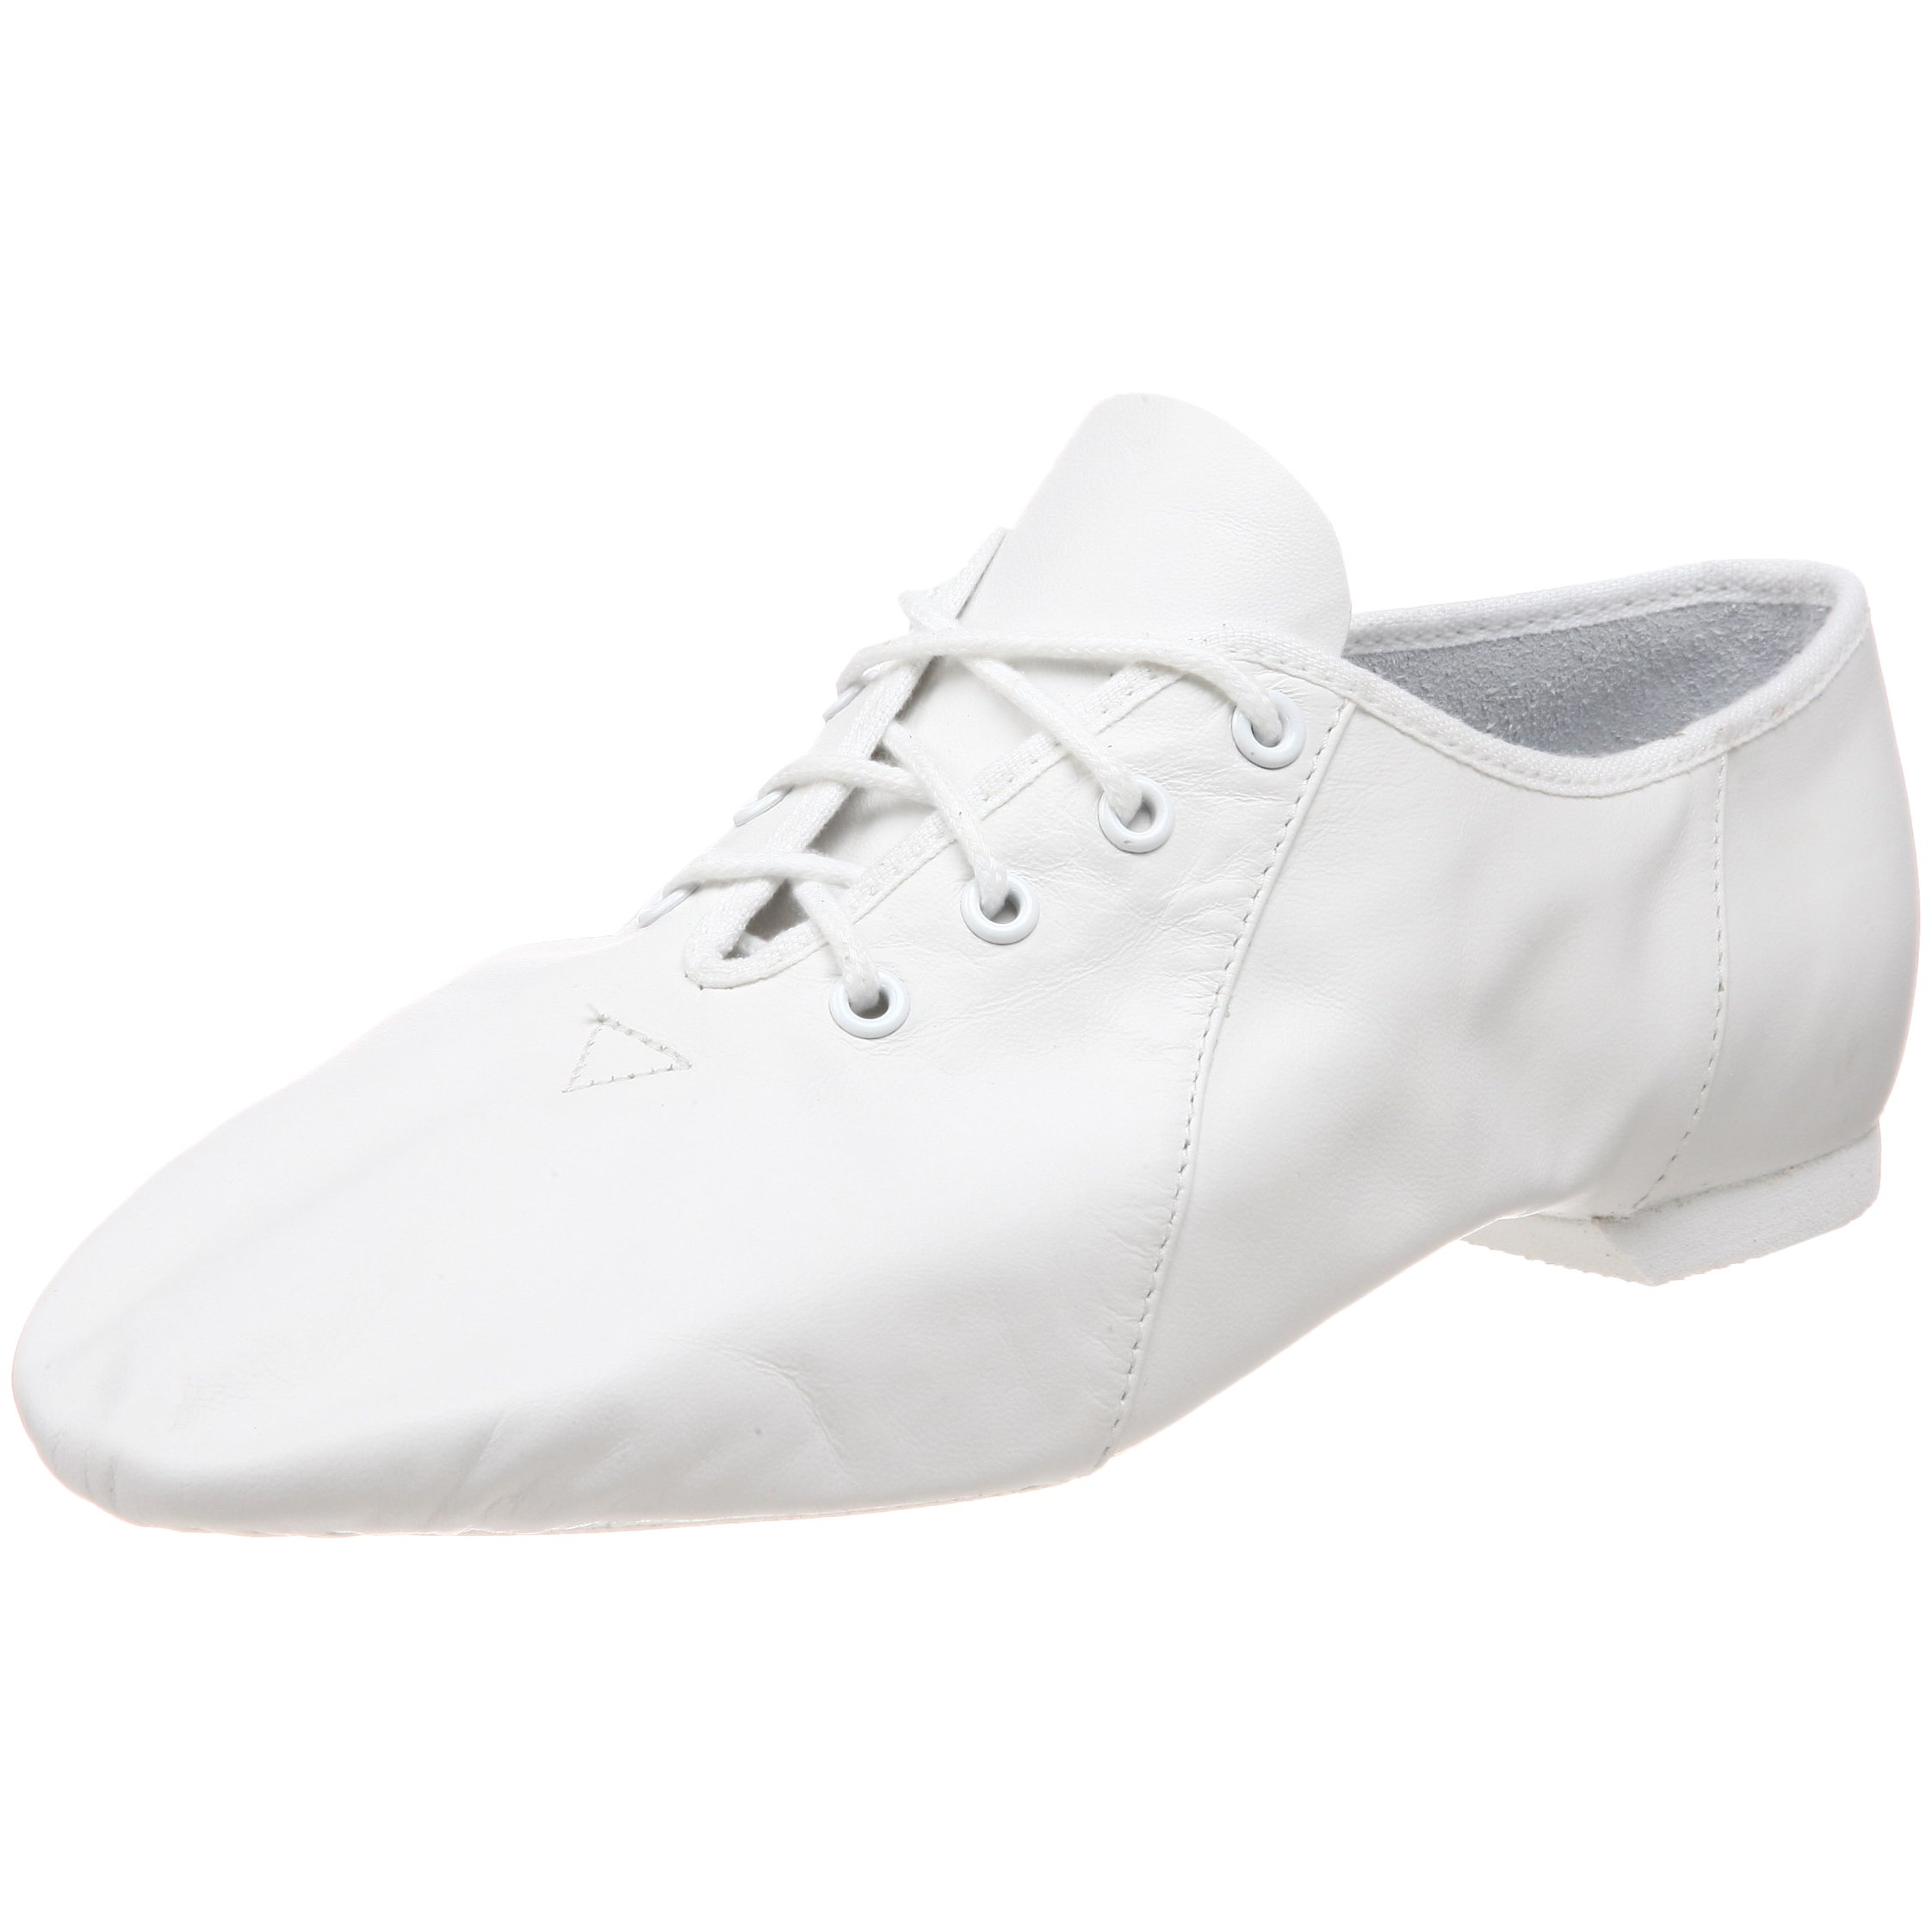 Bloch Women's Jazzsoft Jazz Shoe